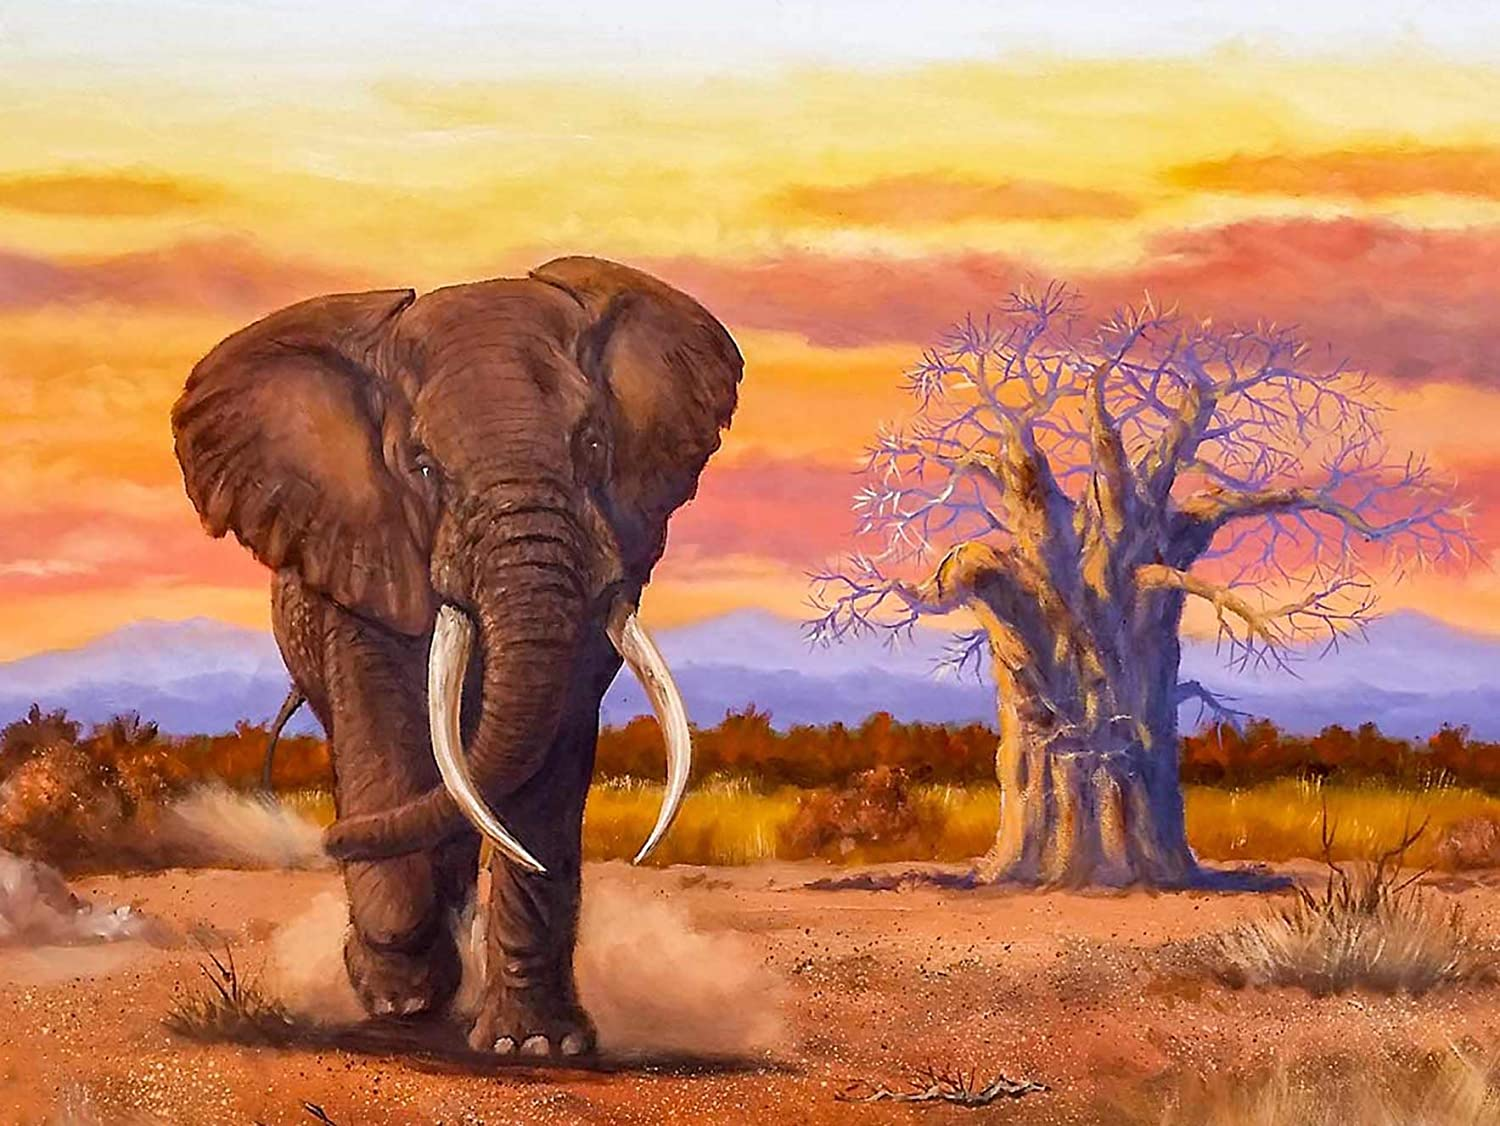 Bimkole DIY 5D Diamond Painting Kit Elephant Tree by Number Kits Paint with Diamonds Arts DIY for Home Decor, 16x20 inch(m4-562)